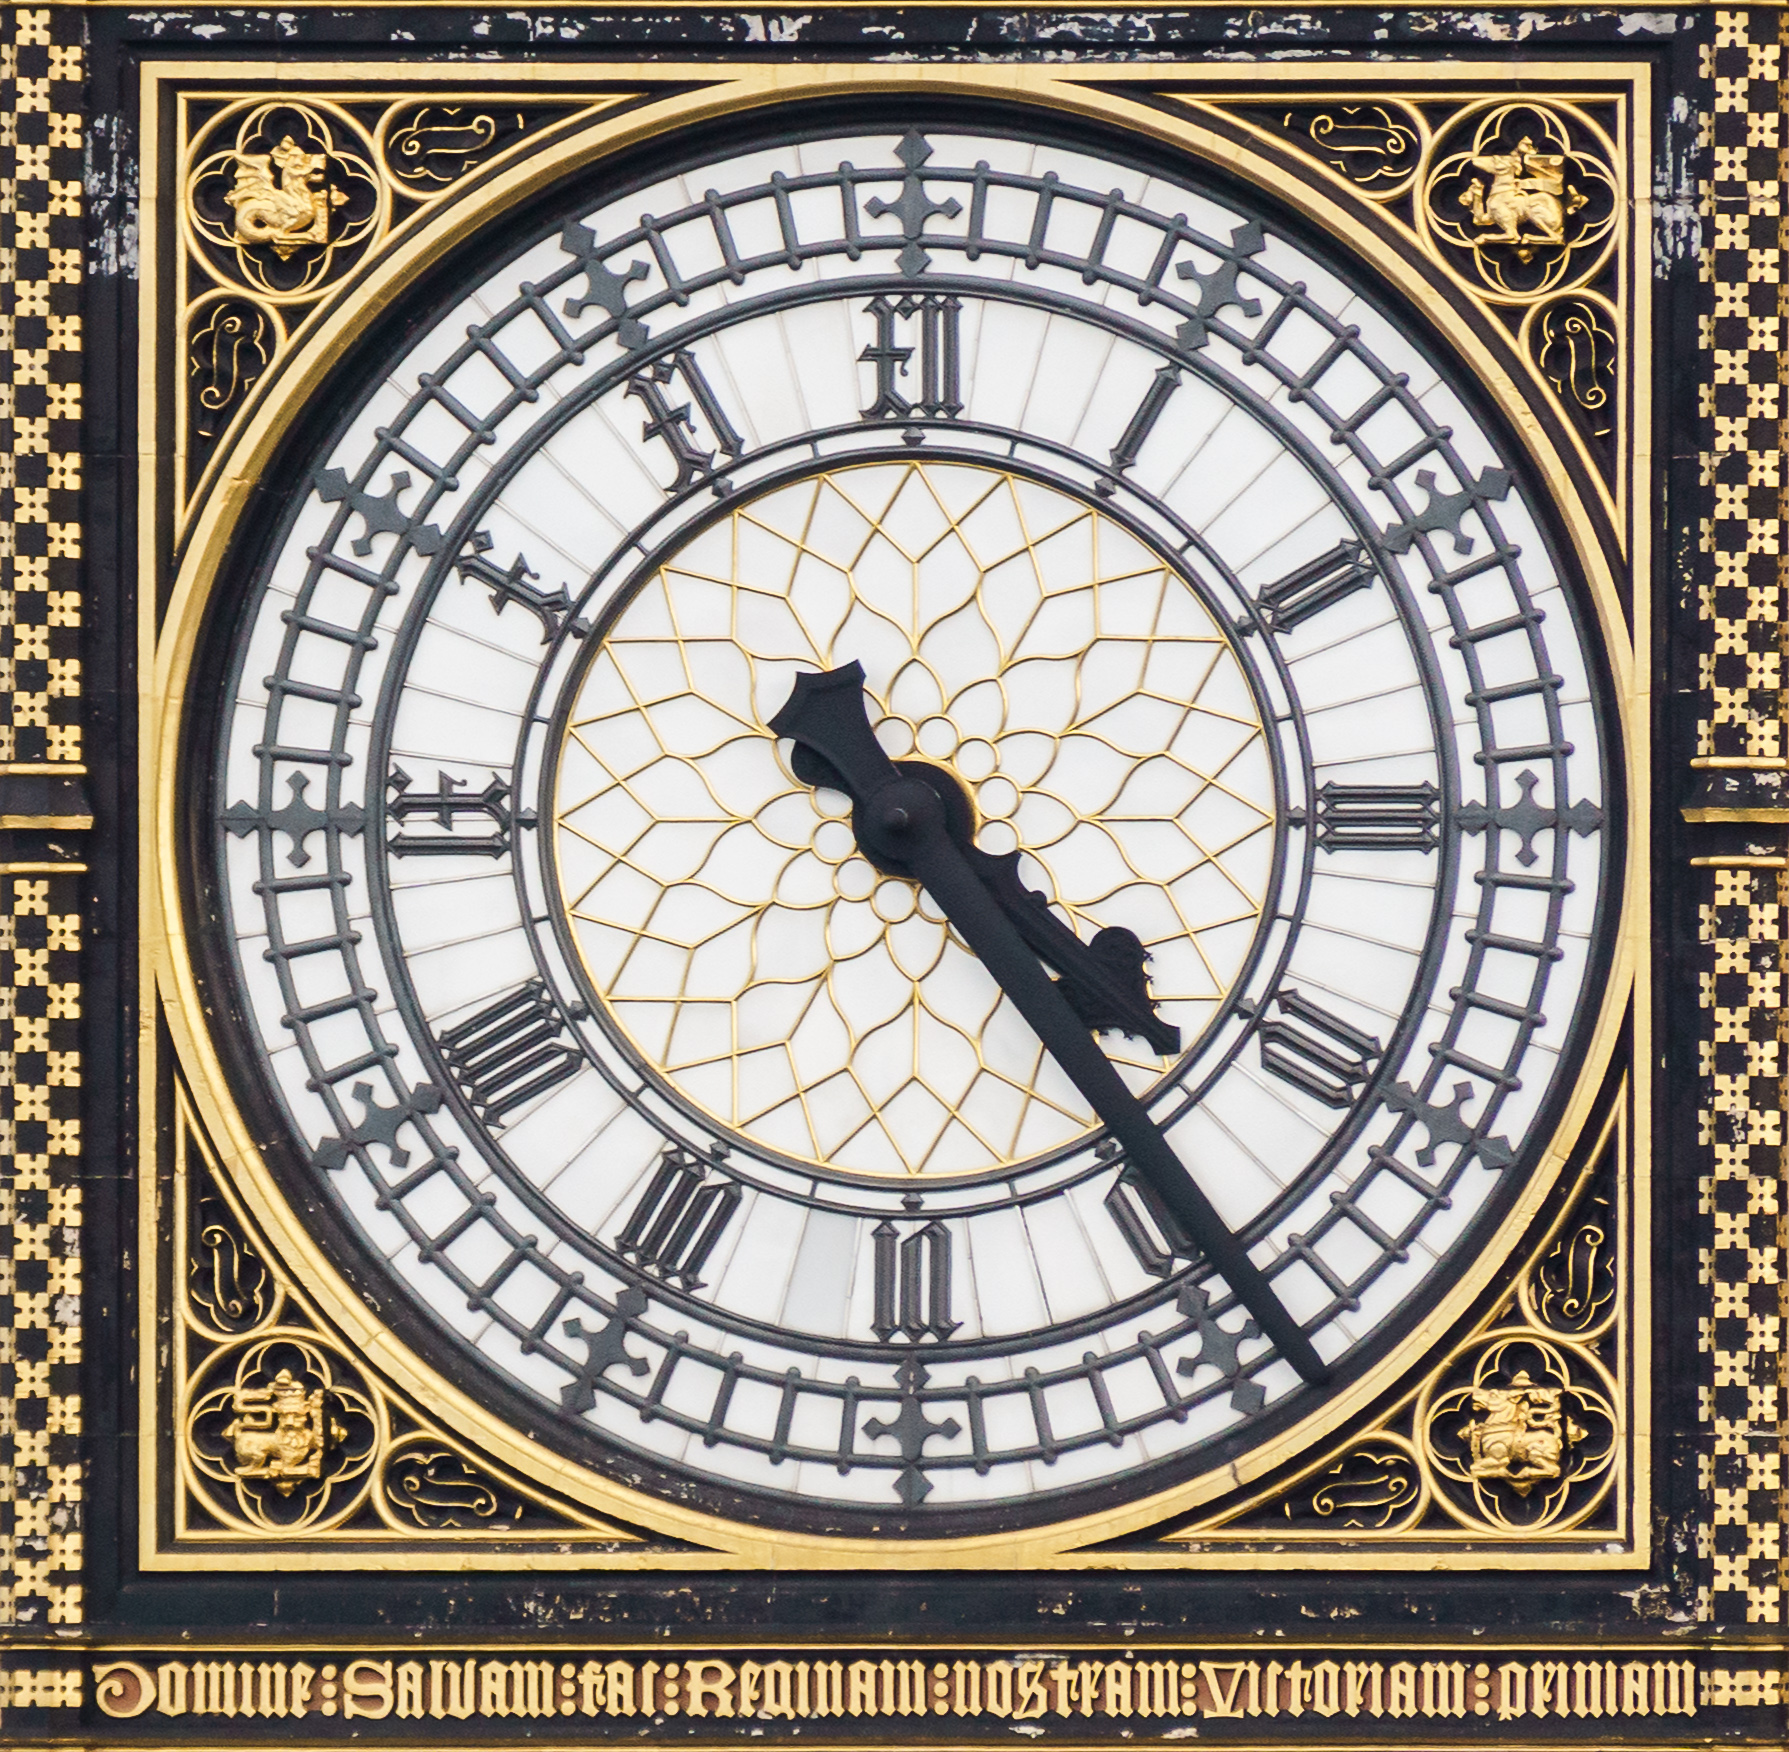 Clock Face and Hands from the Original Big Ben